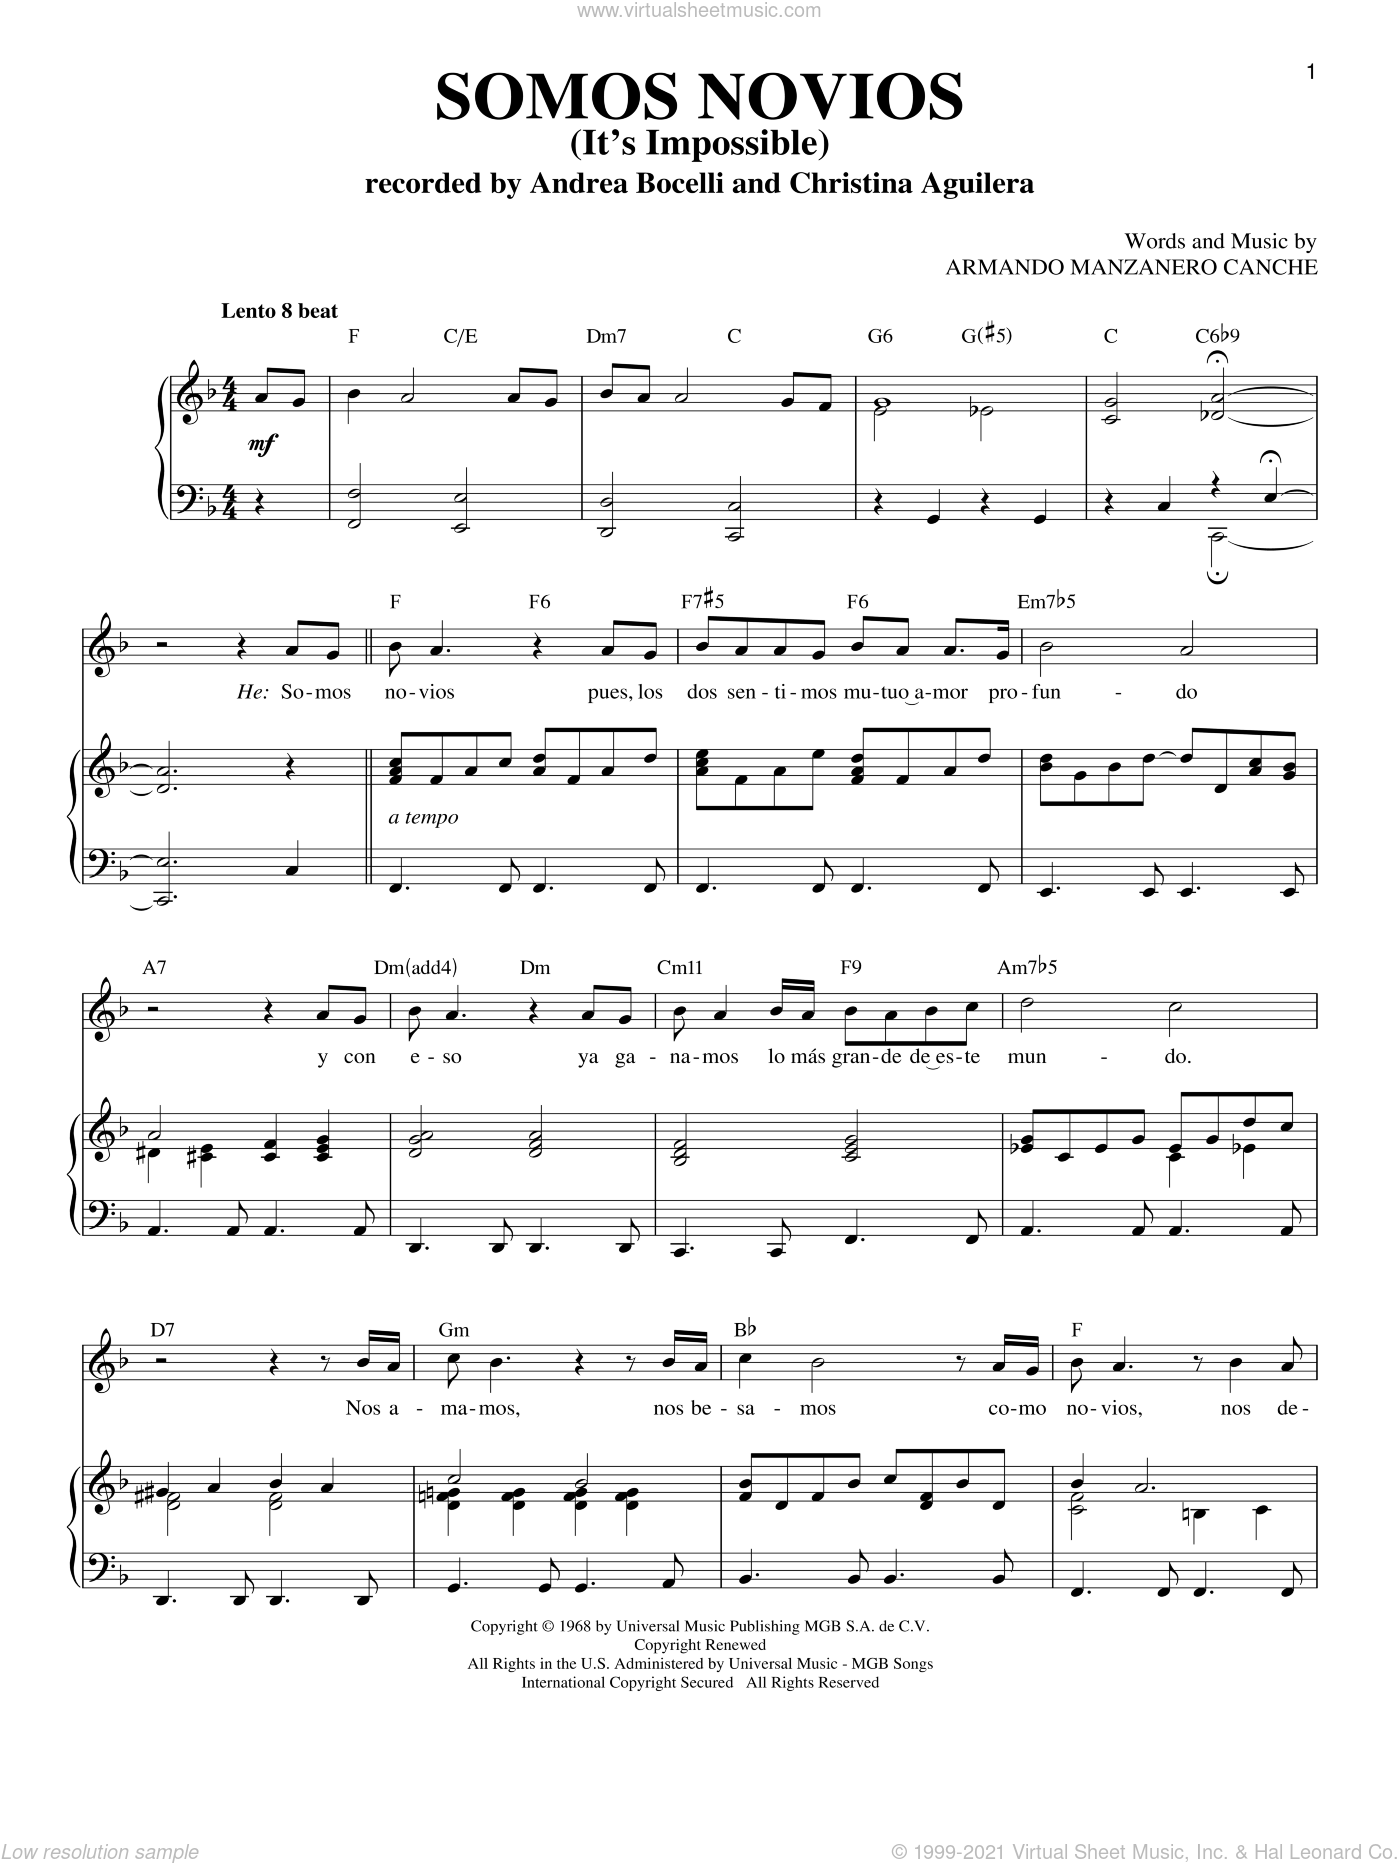 Somos Novios sheet music for voice and piano by Armando Manzanero Canche. Score Image Preview.